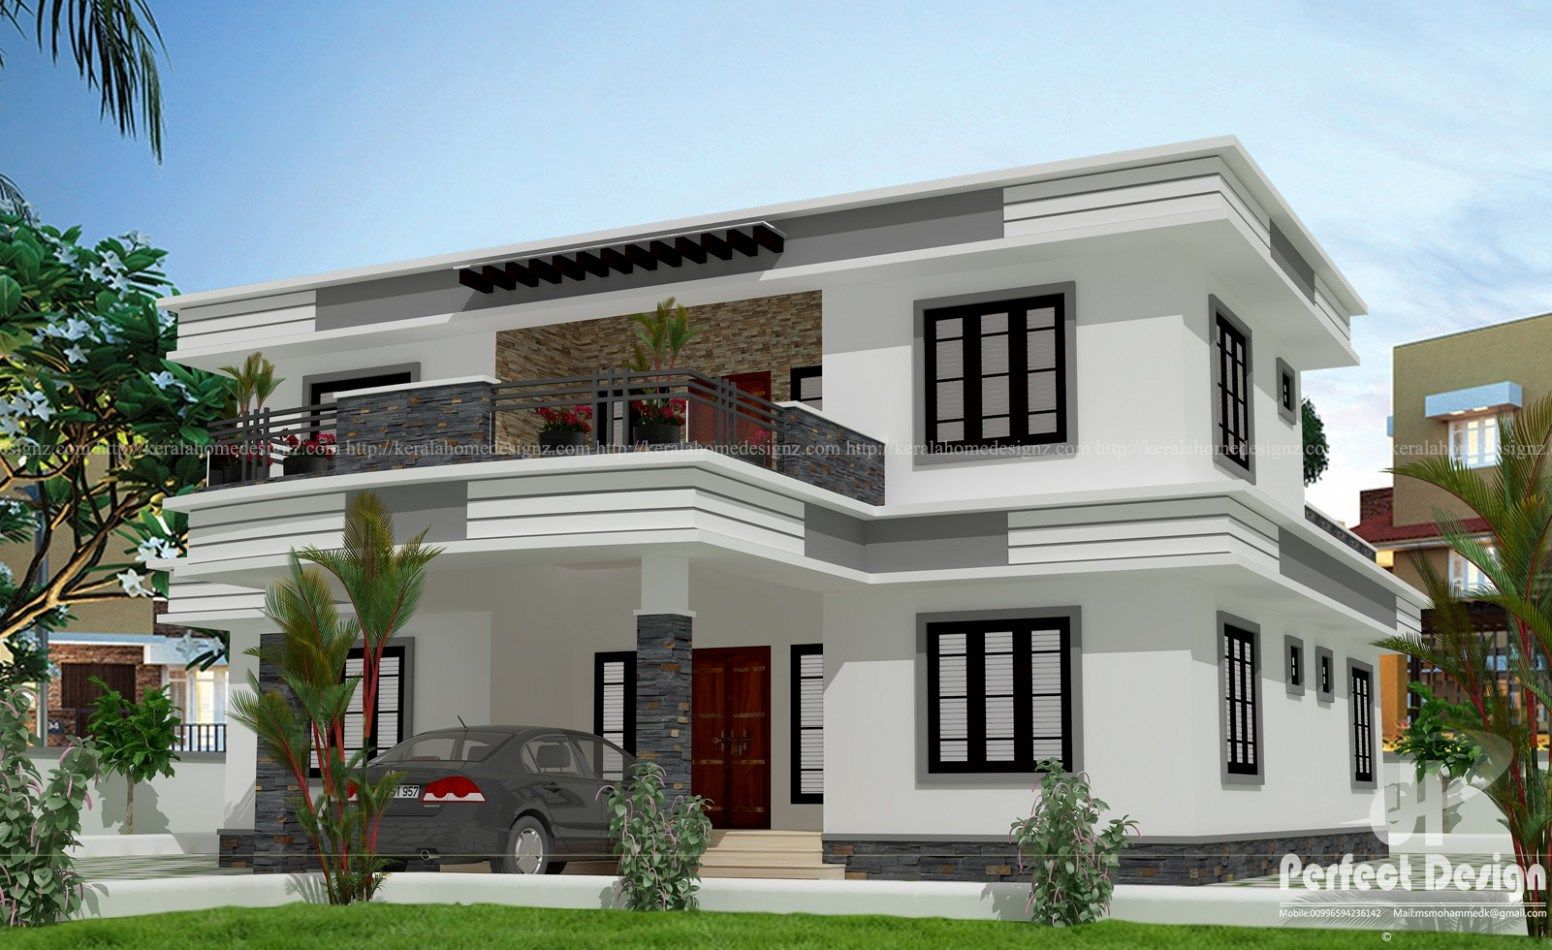 27 Secrets About Home Planning Design That Has Never Been Revealed For The Past 27 Years Kerala House Design Modern Style House Plans Architectural House Plans